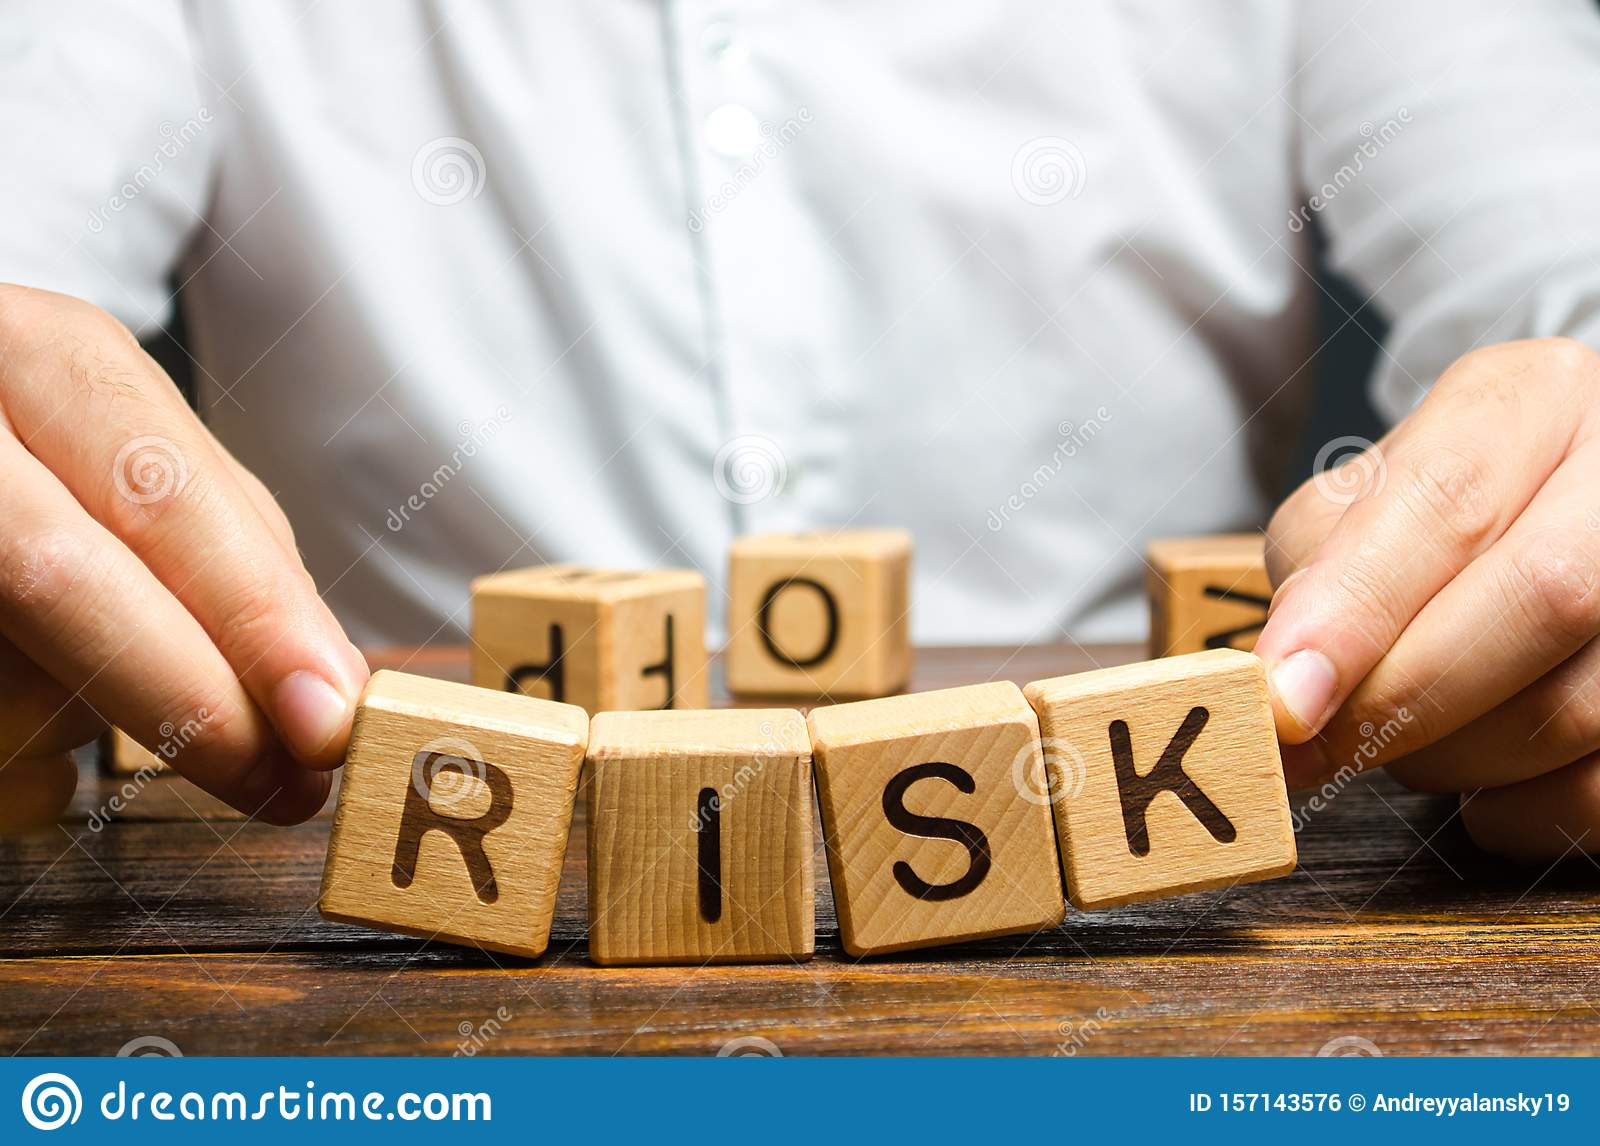 The Man Carelessly Raises The Word Risk. High Risks In